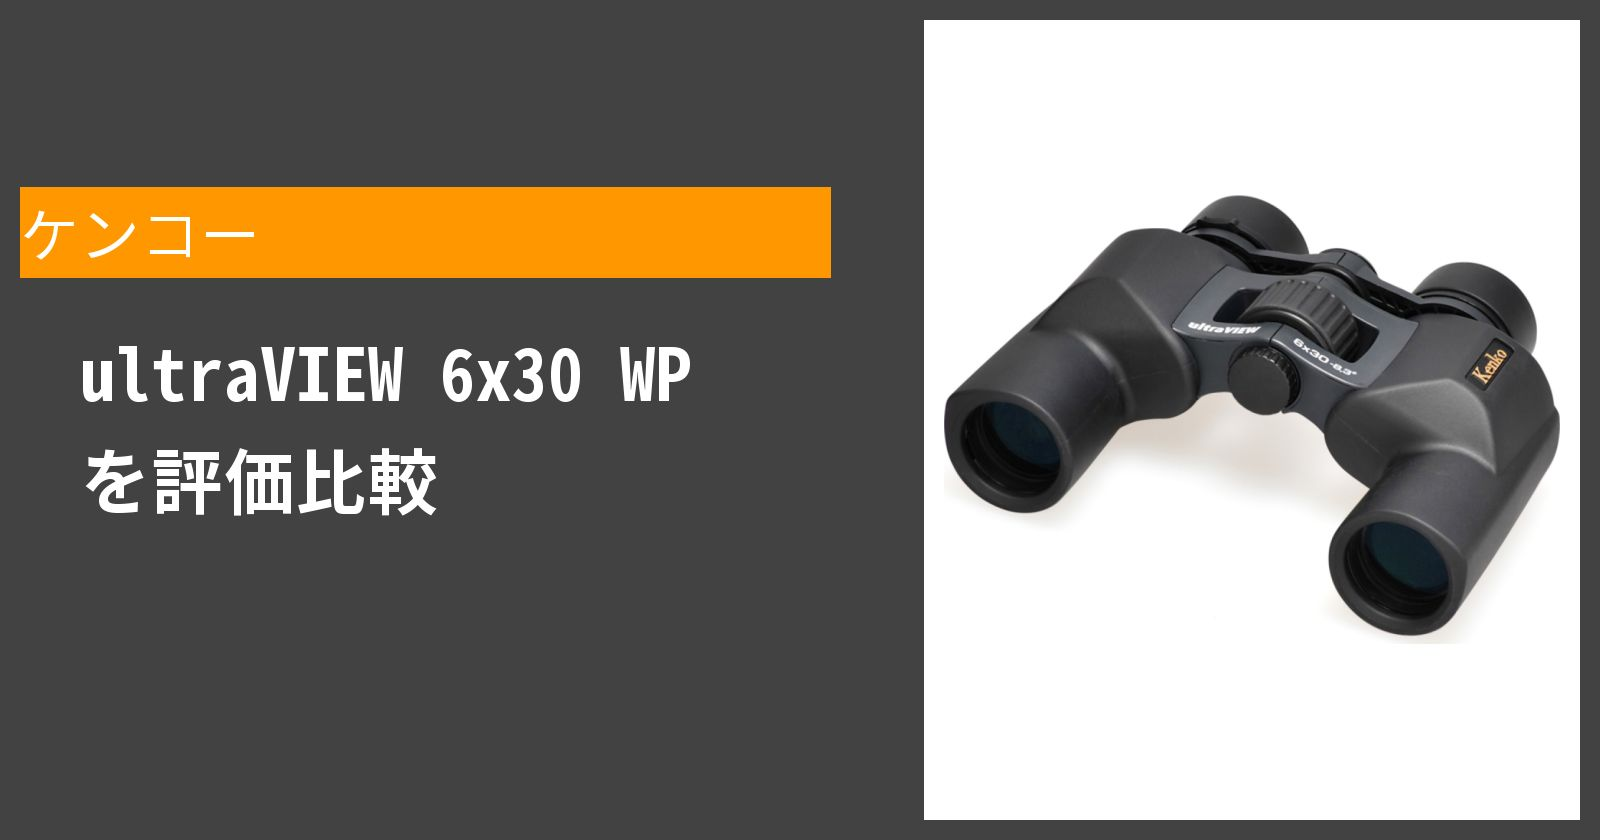 ultraVIEW 6x30 WPを徹底評価